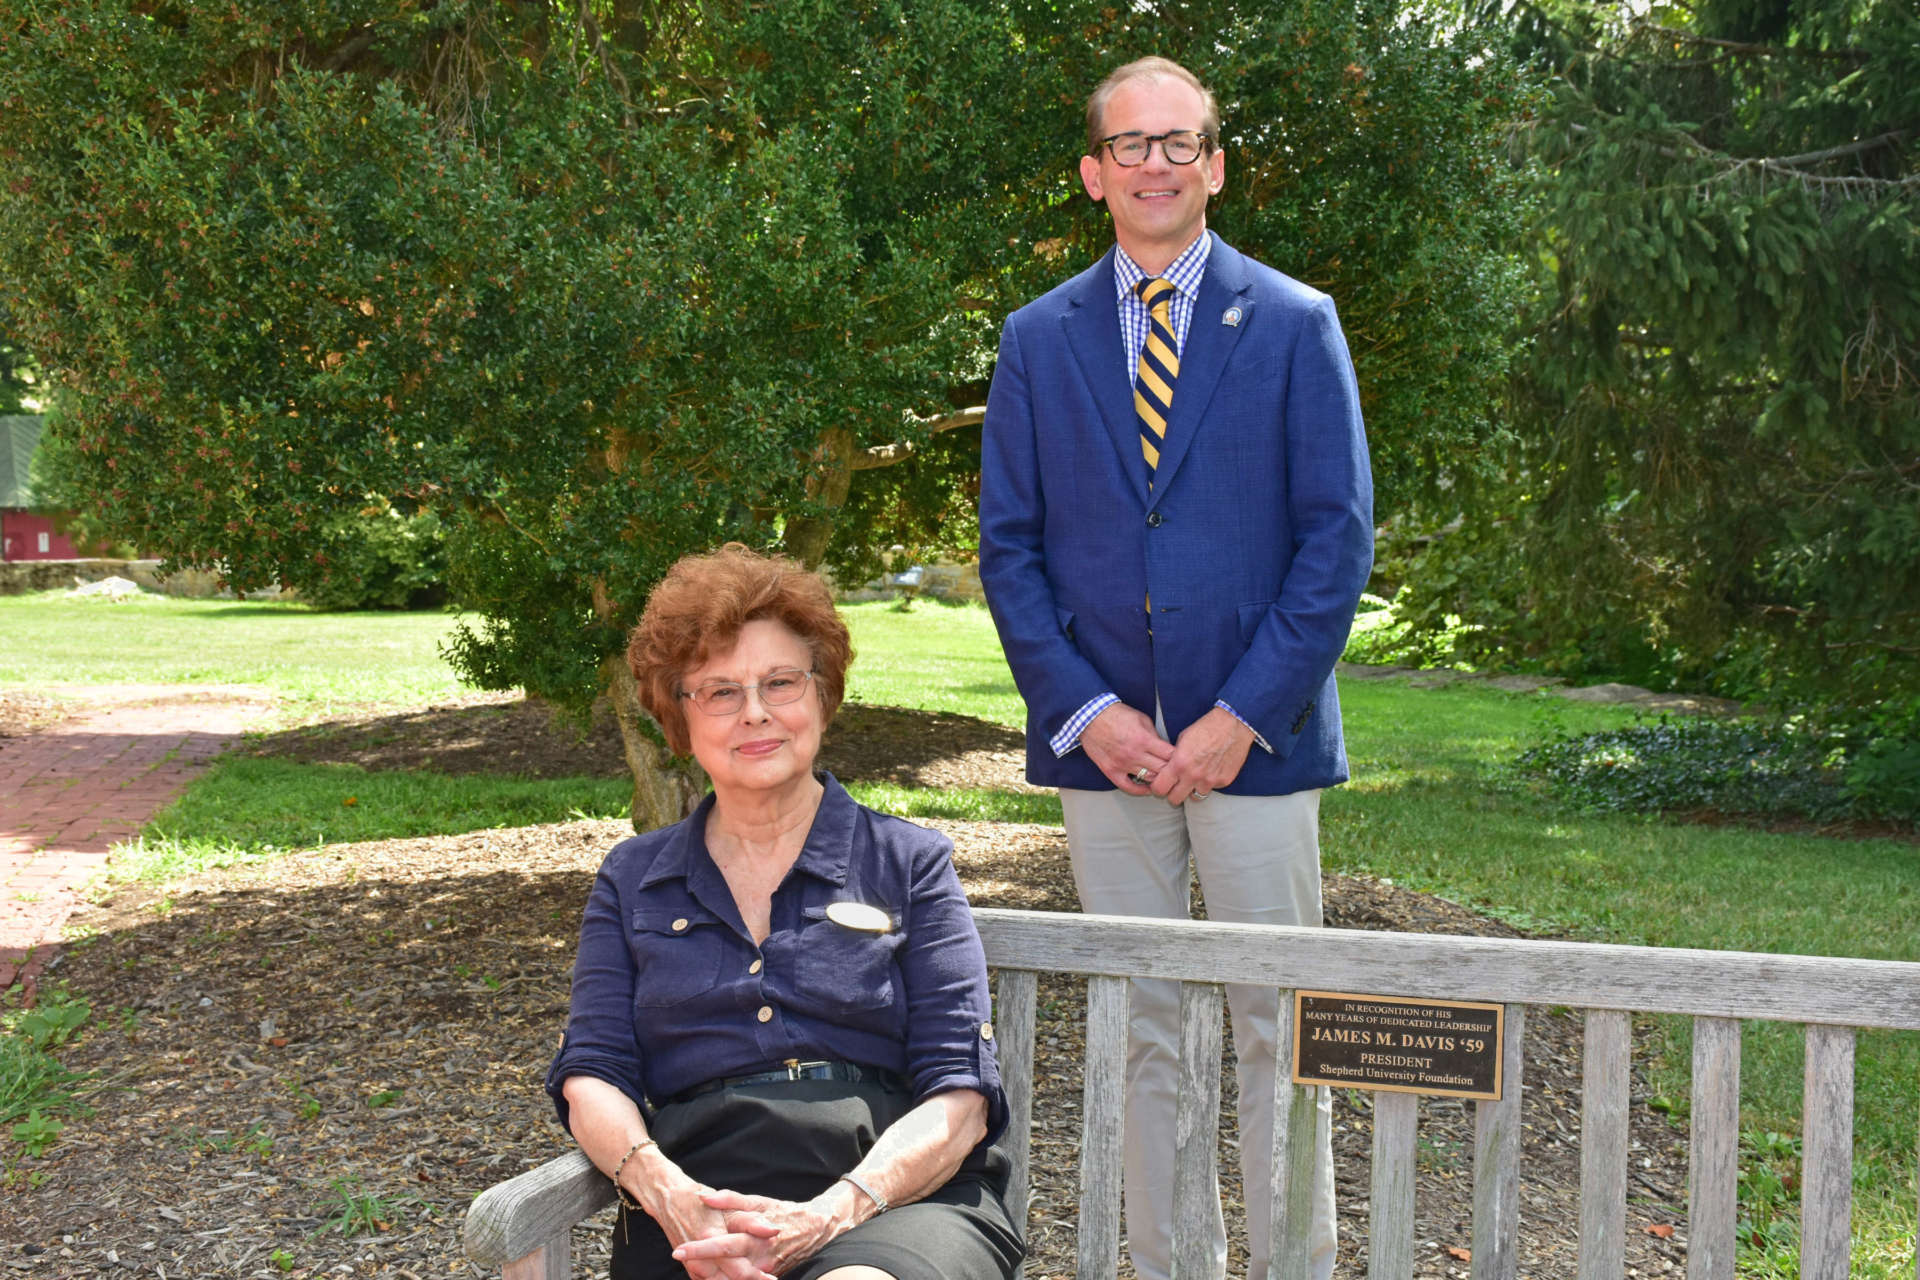 Pictured are (seated) Dr. Sylvia Bailey Shurbutt, director, Center for Appalachian Studies and Communities, and Dr. Scott Beard, provost.